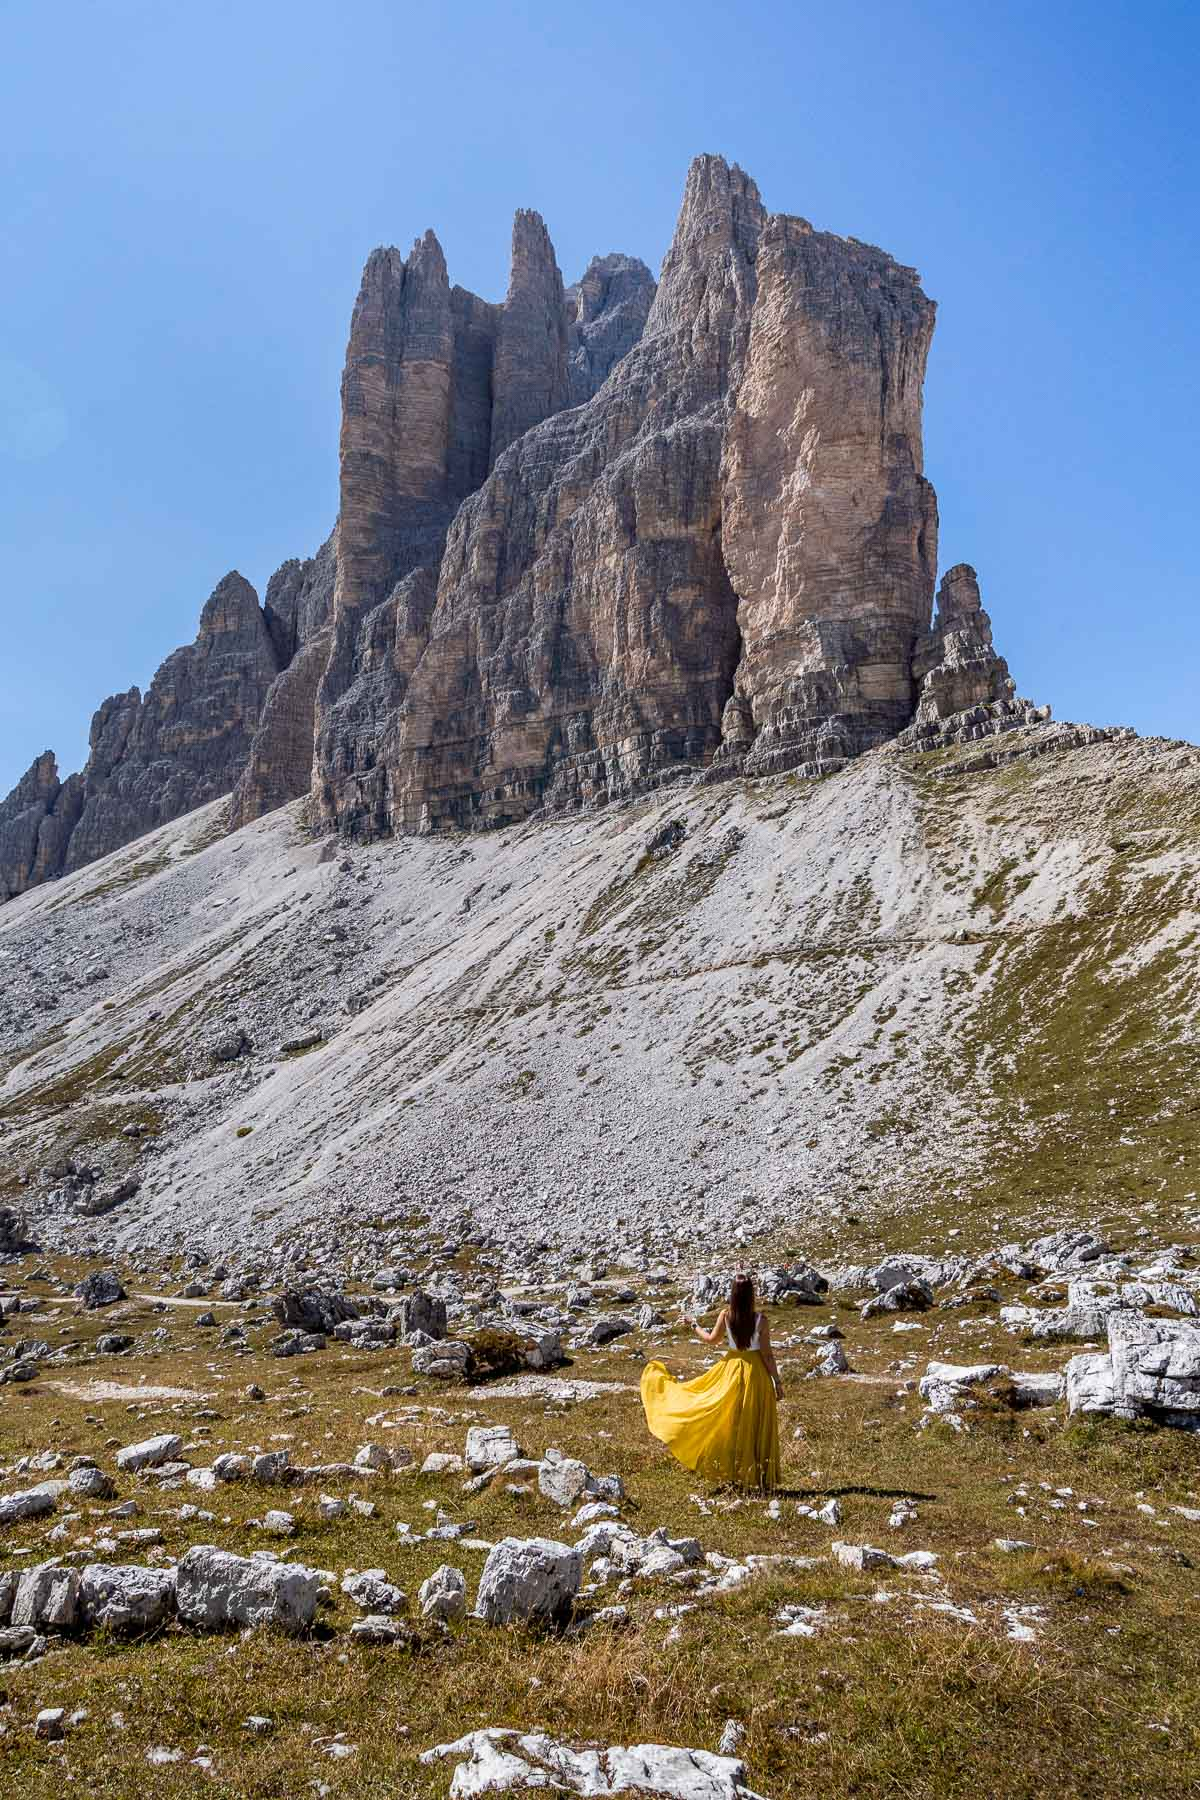 Girl in a yellow skirt twirling in front of the three peaks of Tre Cime di Lavaredo in the Dolomites